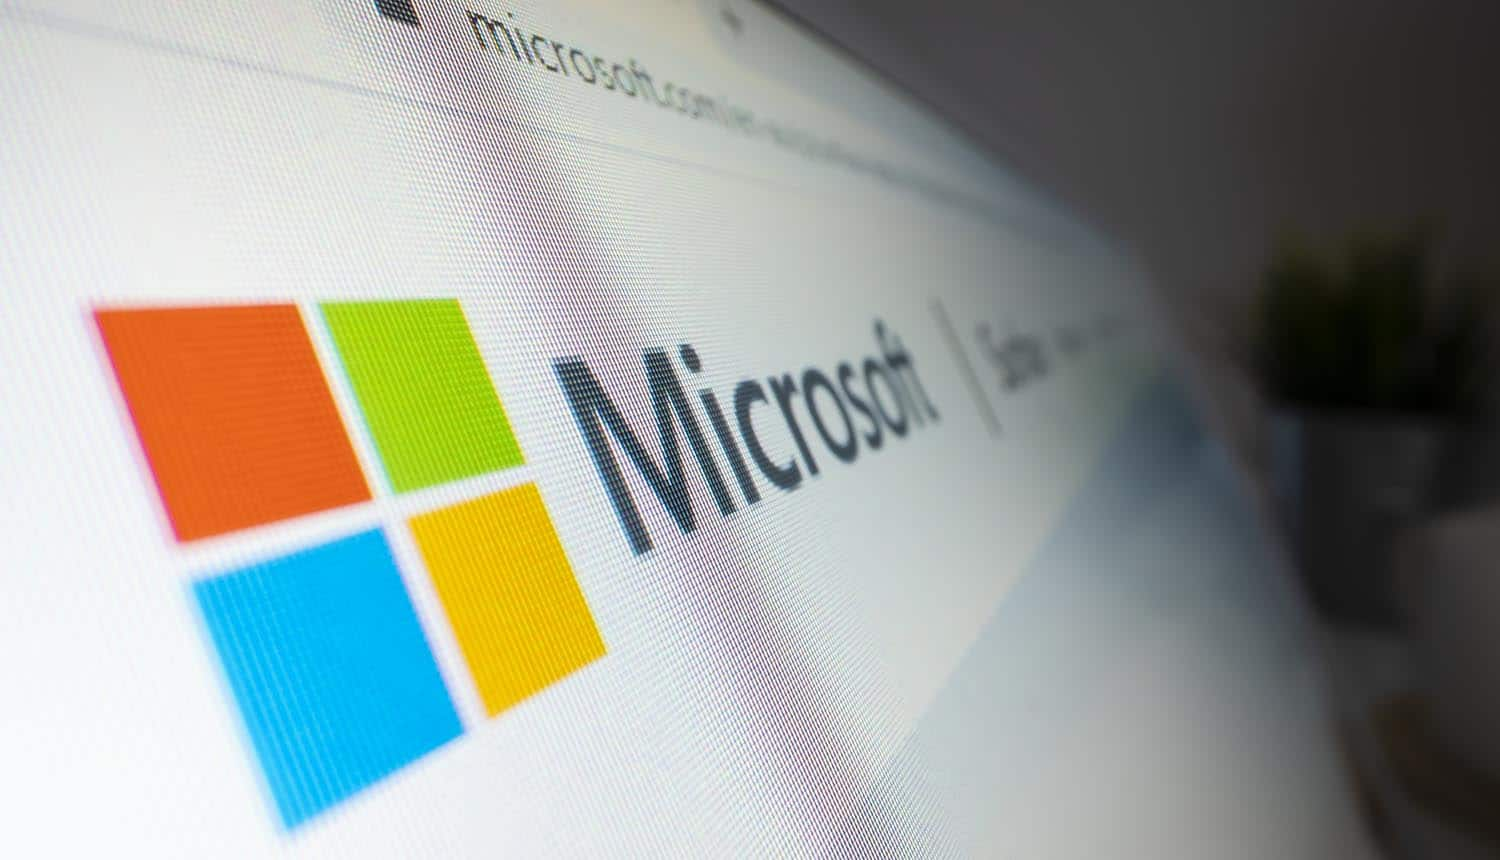 Close-up view of Microsoft logo on its website showing cyber attacks on Microsoft Exchange